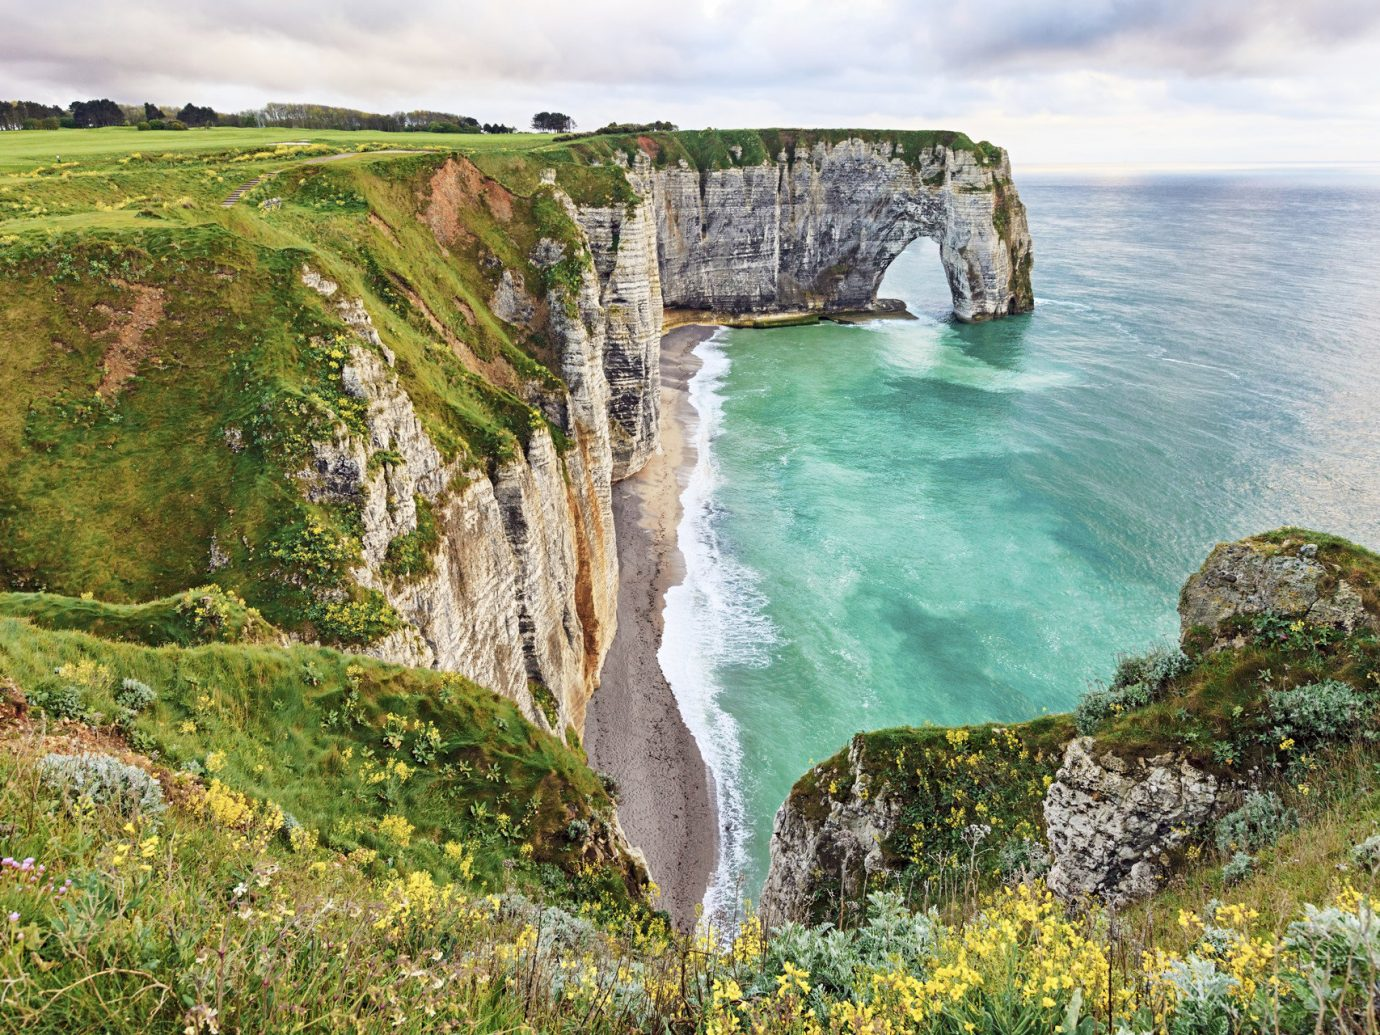 Offbeat outdoor rock grass cliff Coast Nature landform geographical feature body of water shore terrain Sea Ocean bay cape landscape cove water feature surrounded